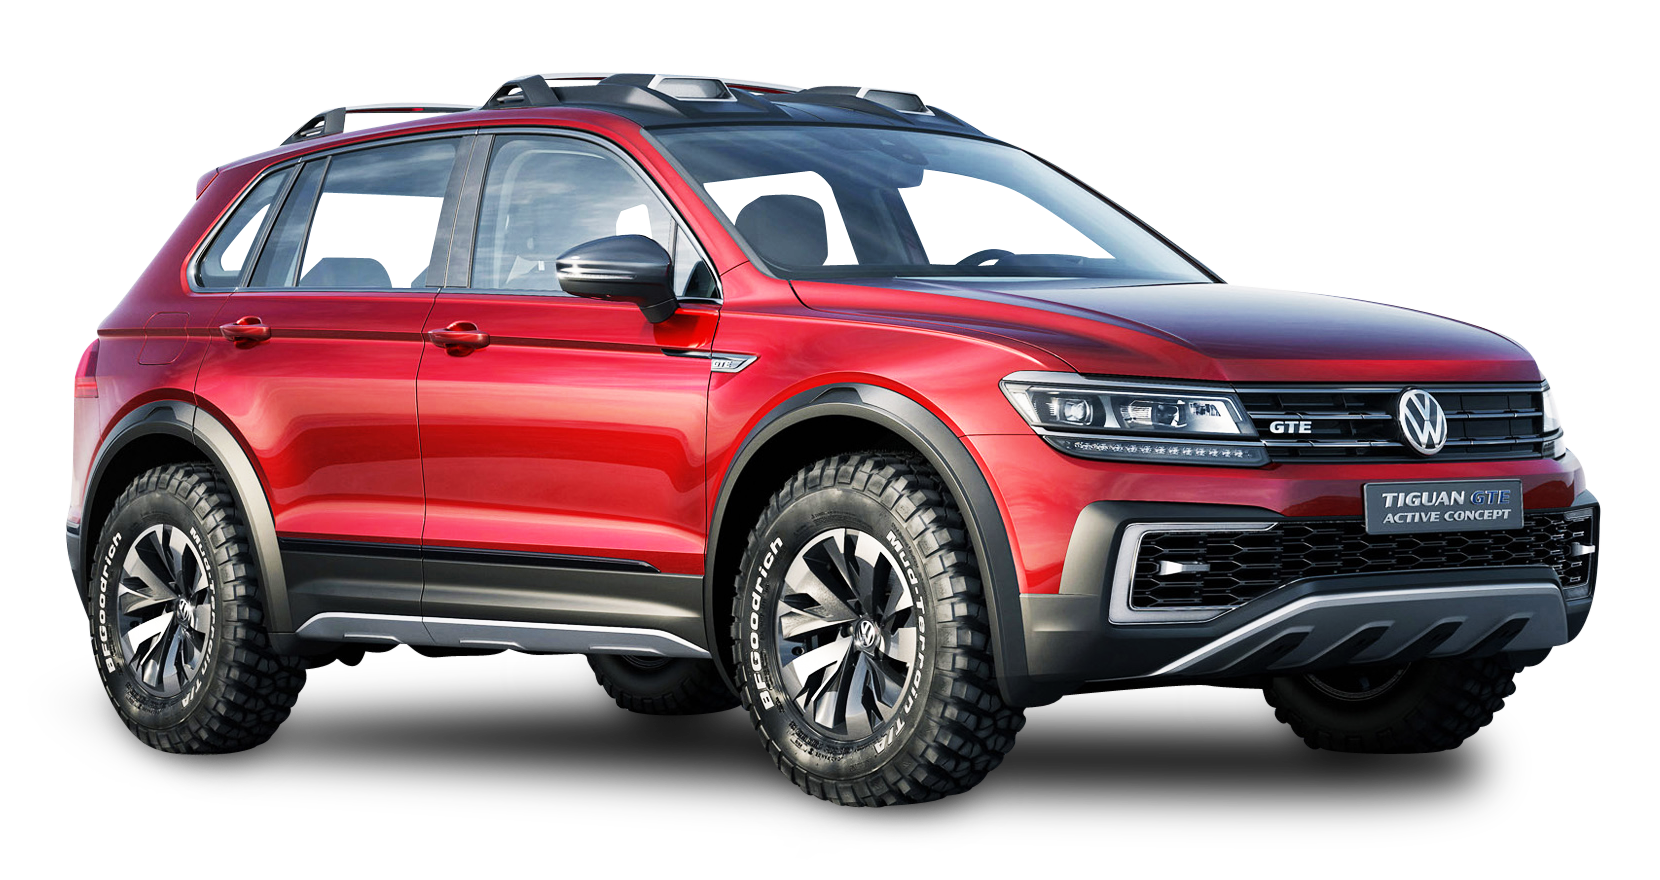 red volkswagen tiguan gte active car png image pngpix. Black Bedroom Furniture Sets. Home Design Ideas